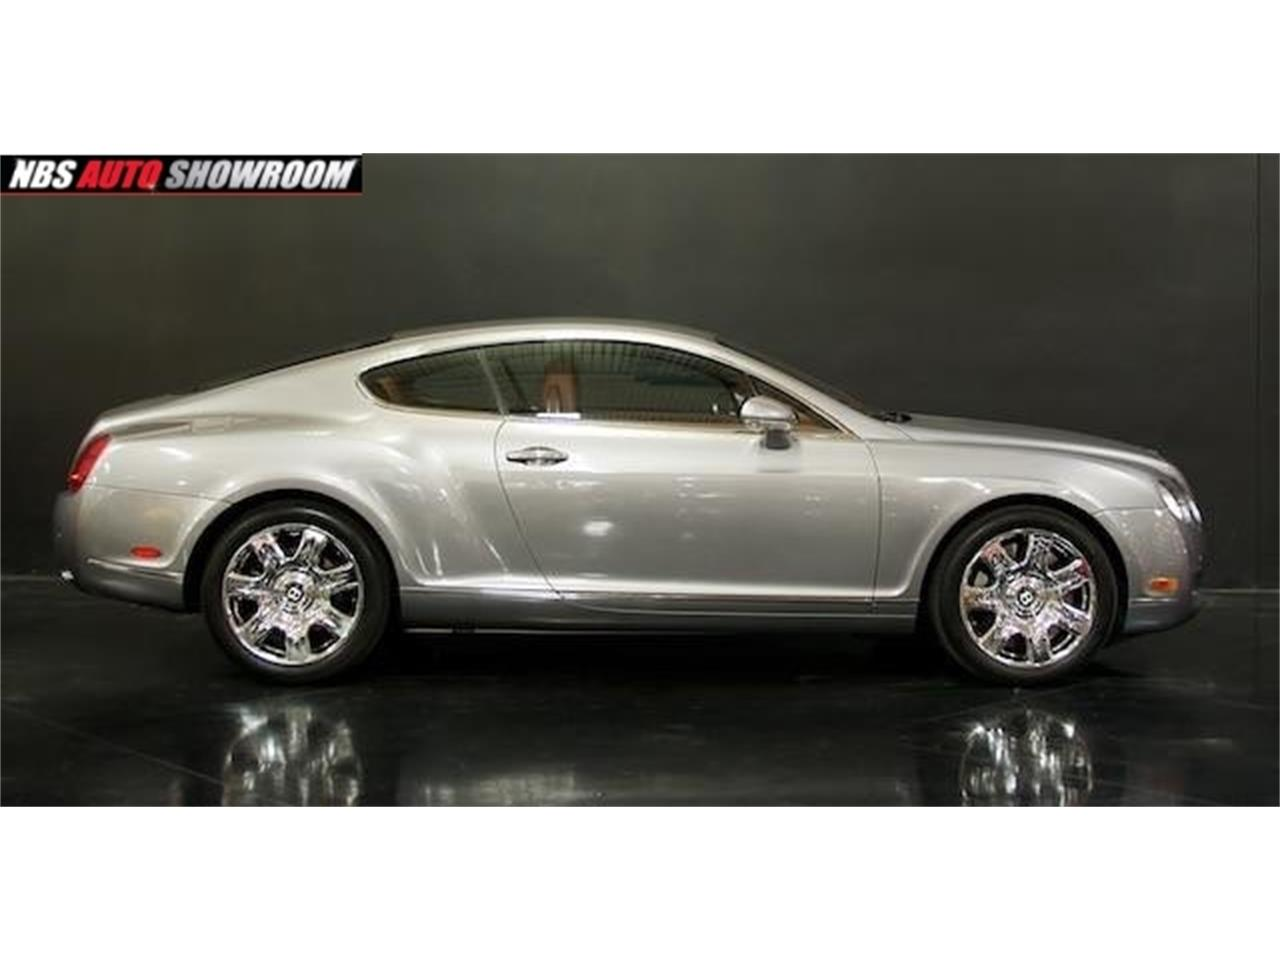 Large Picture of 2006 Bentley Continental - $41,000.00 Offered by NBS Auto Showroom - L512